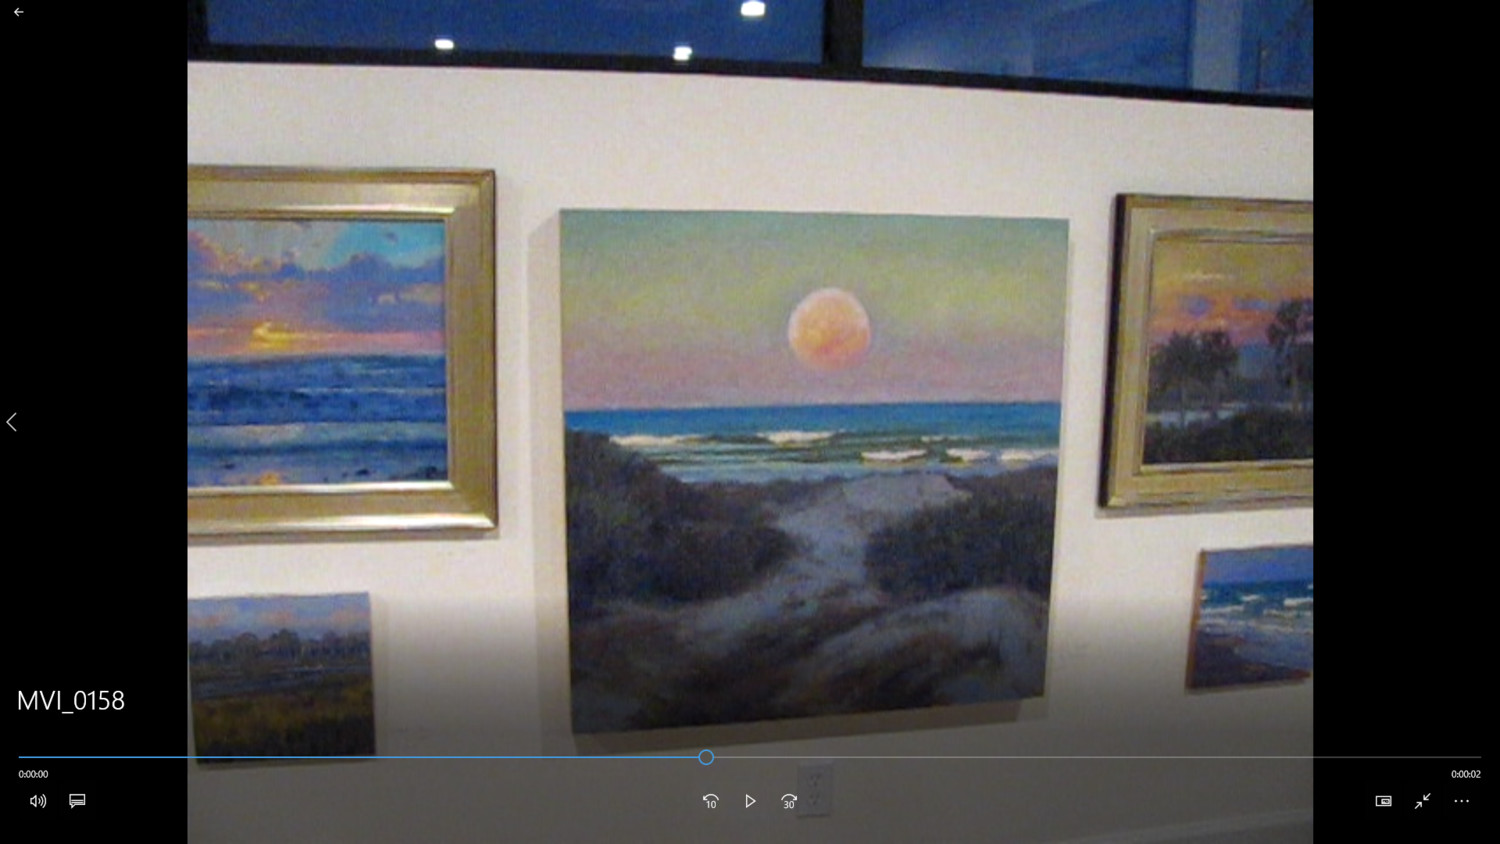 Photos at Eugene Quinn's gallery depict the beauty of the Guana Preserve.